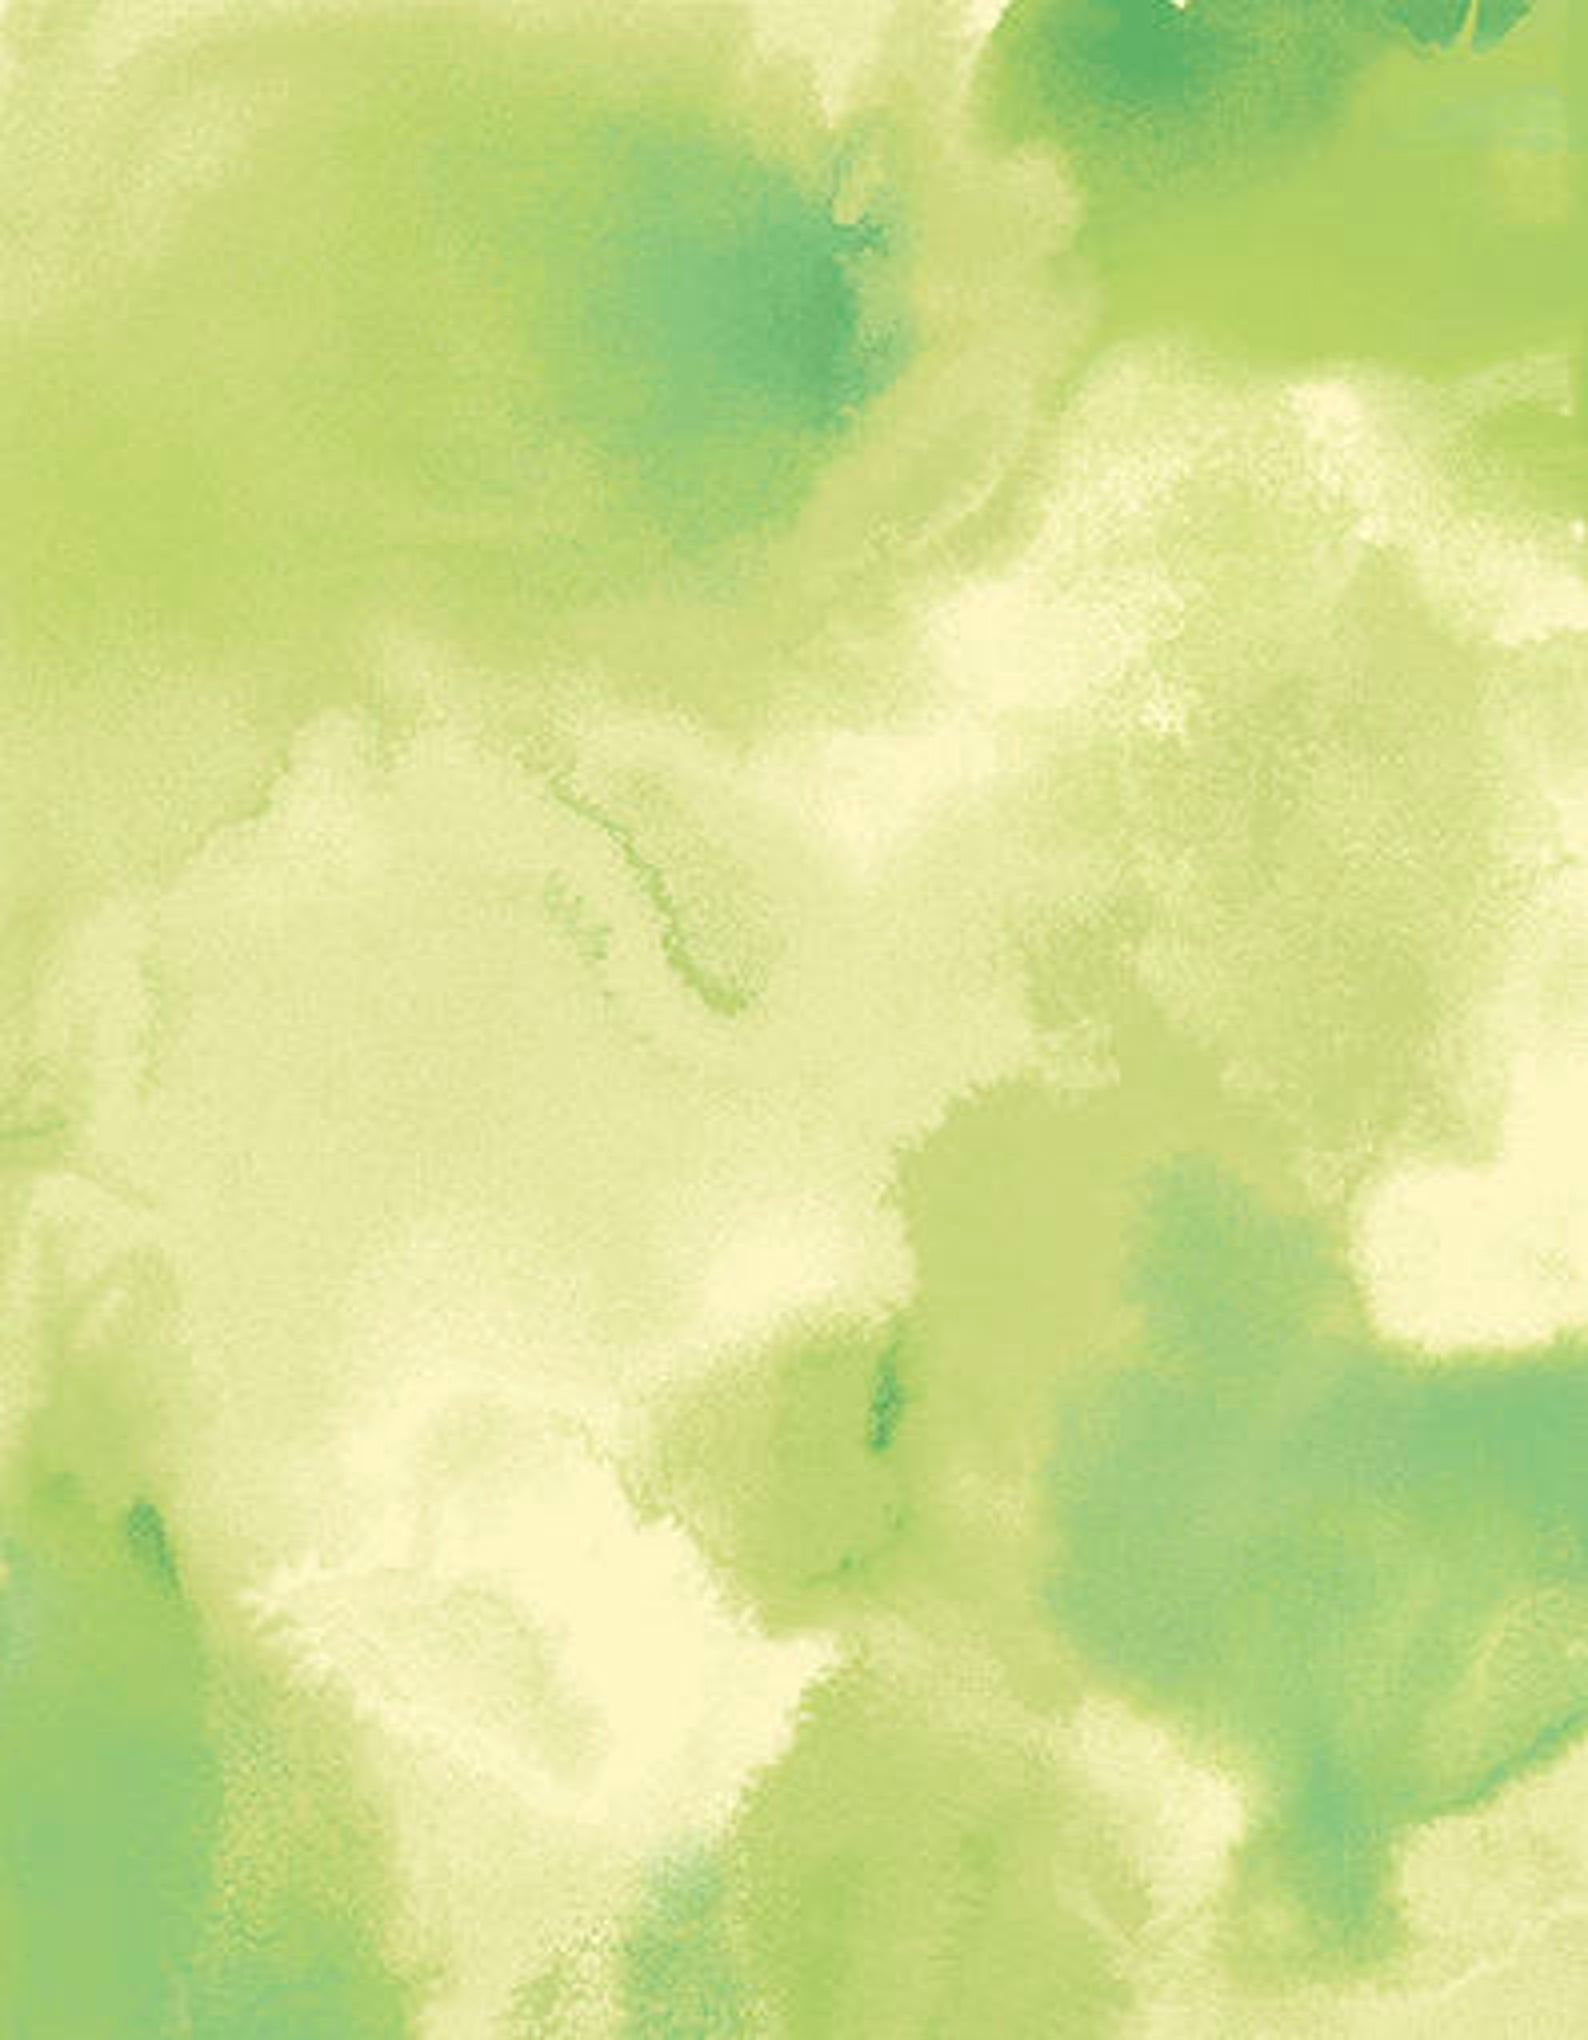 Bright Ink Light Green Watercolor Painted Paper Textured